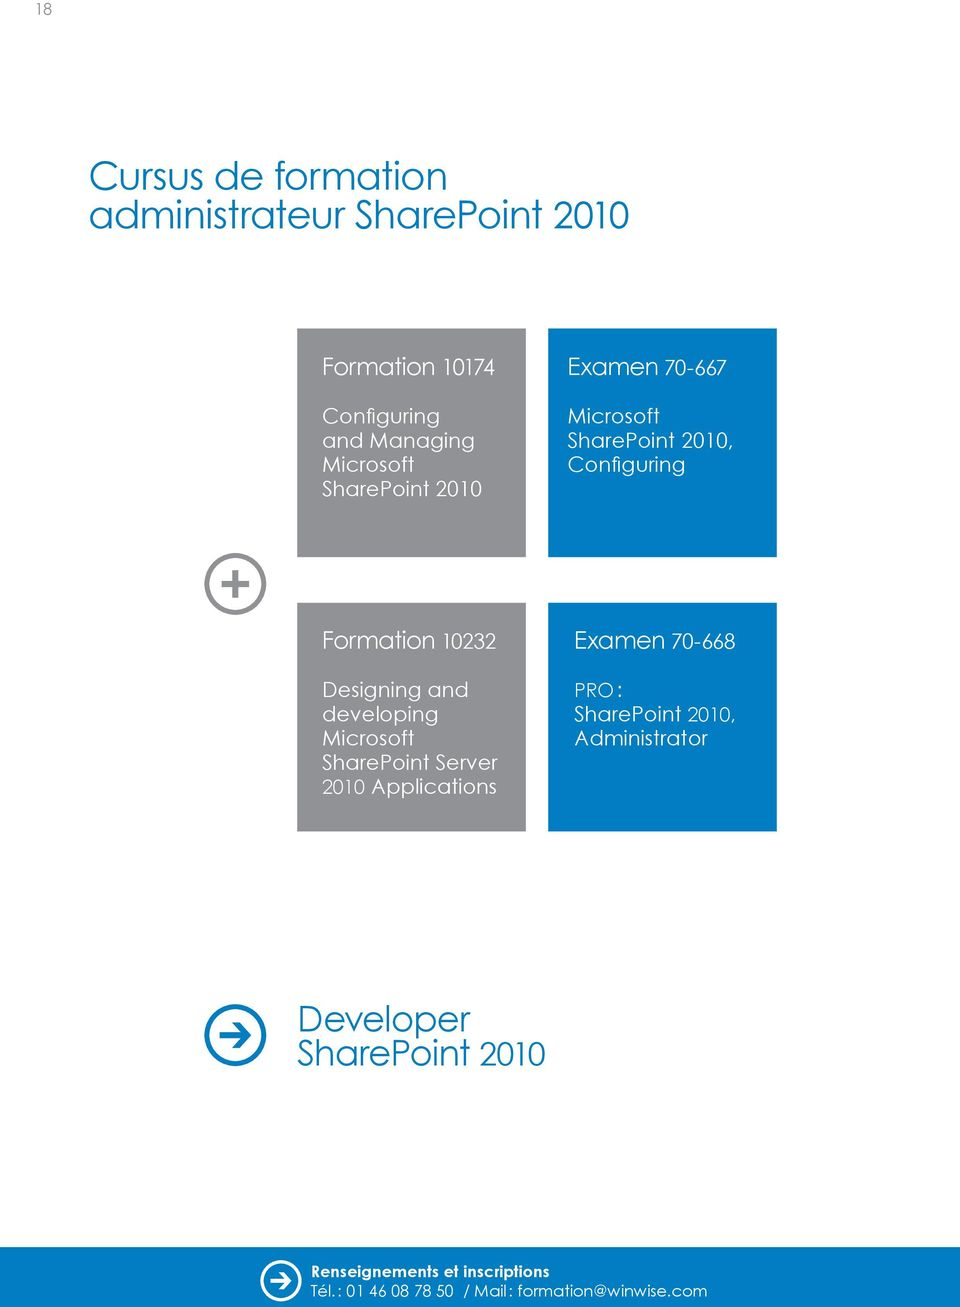 Configuring Formation 10232 Designing and developing Microsoft SharePoint Server